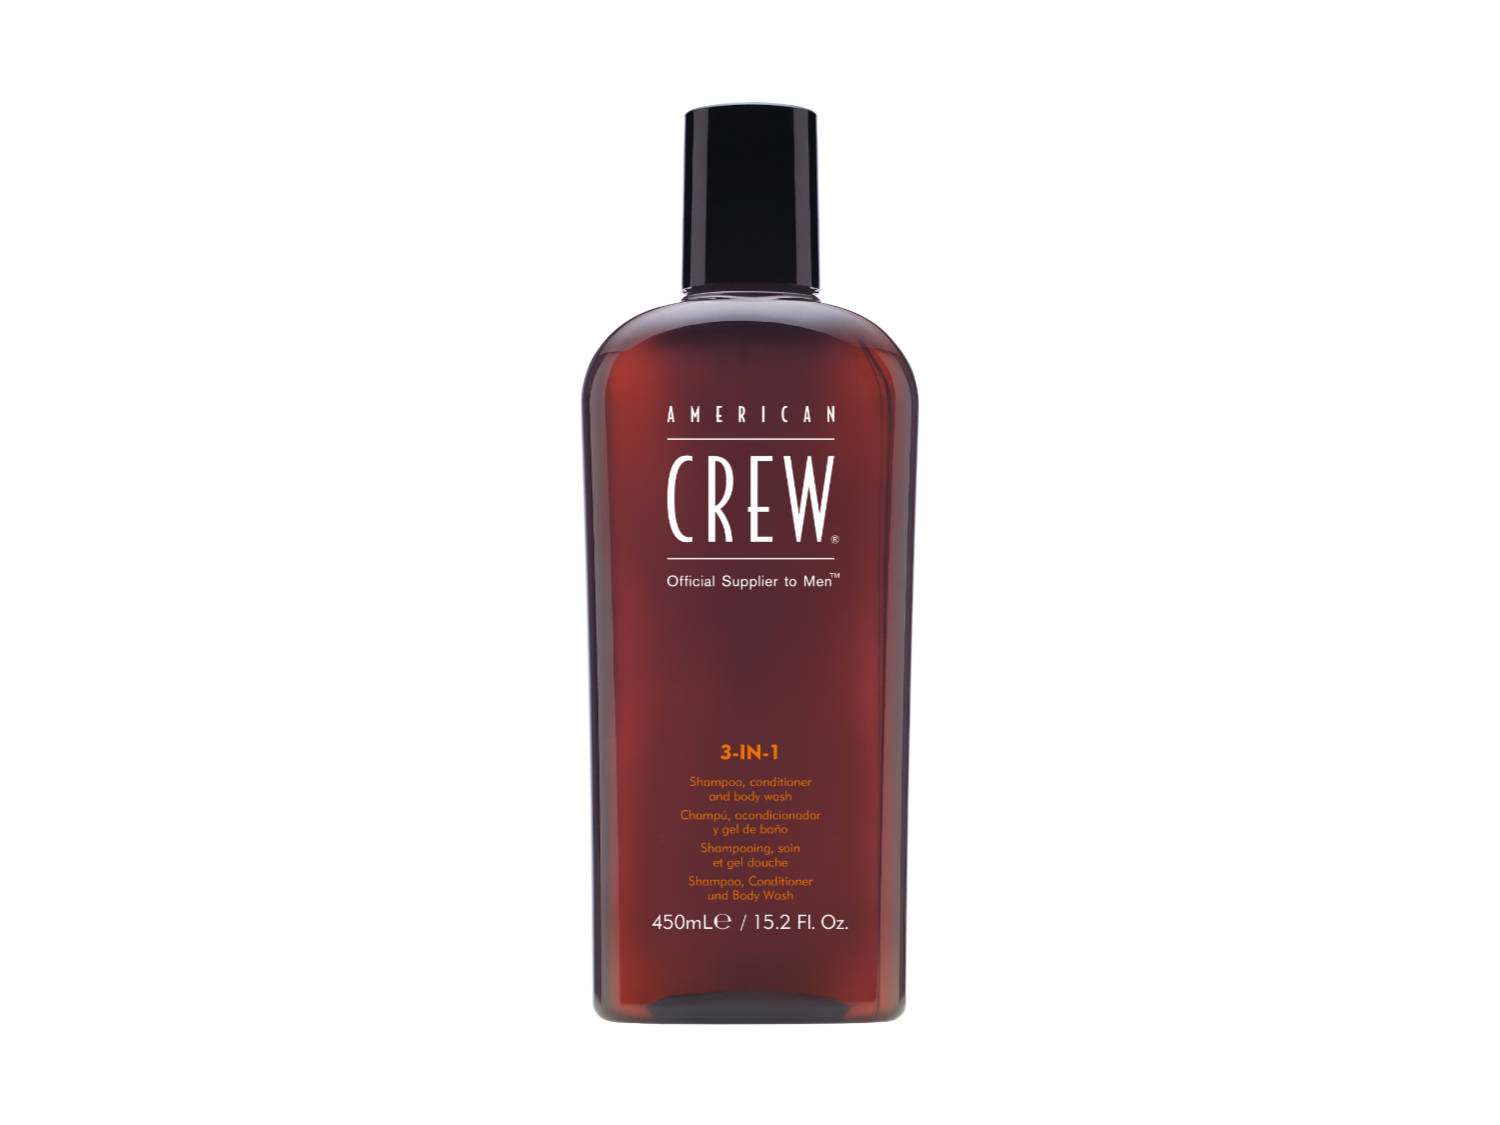 Arma Beauty - American Crew - 3-IN-1